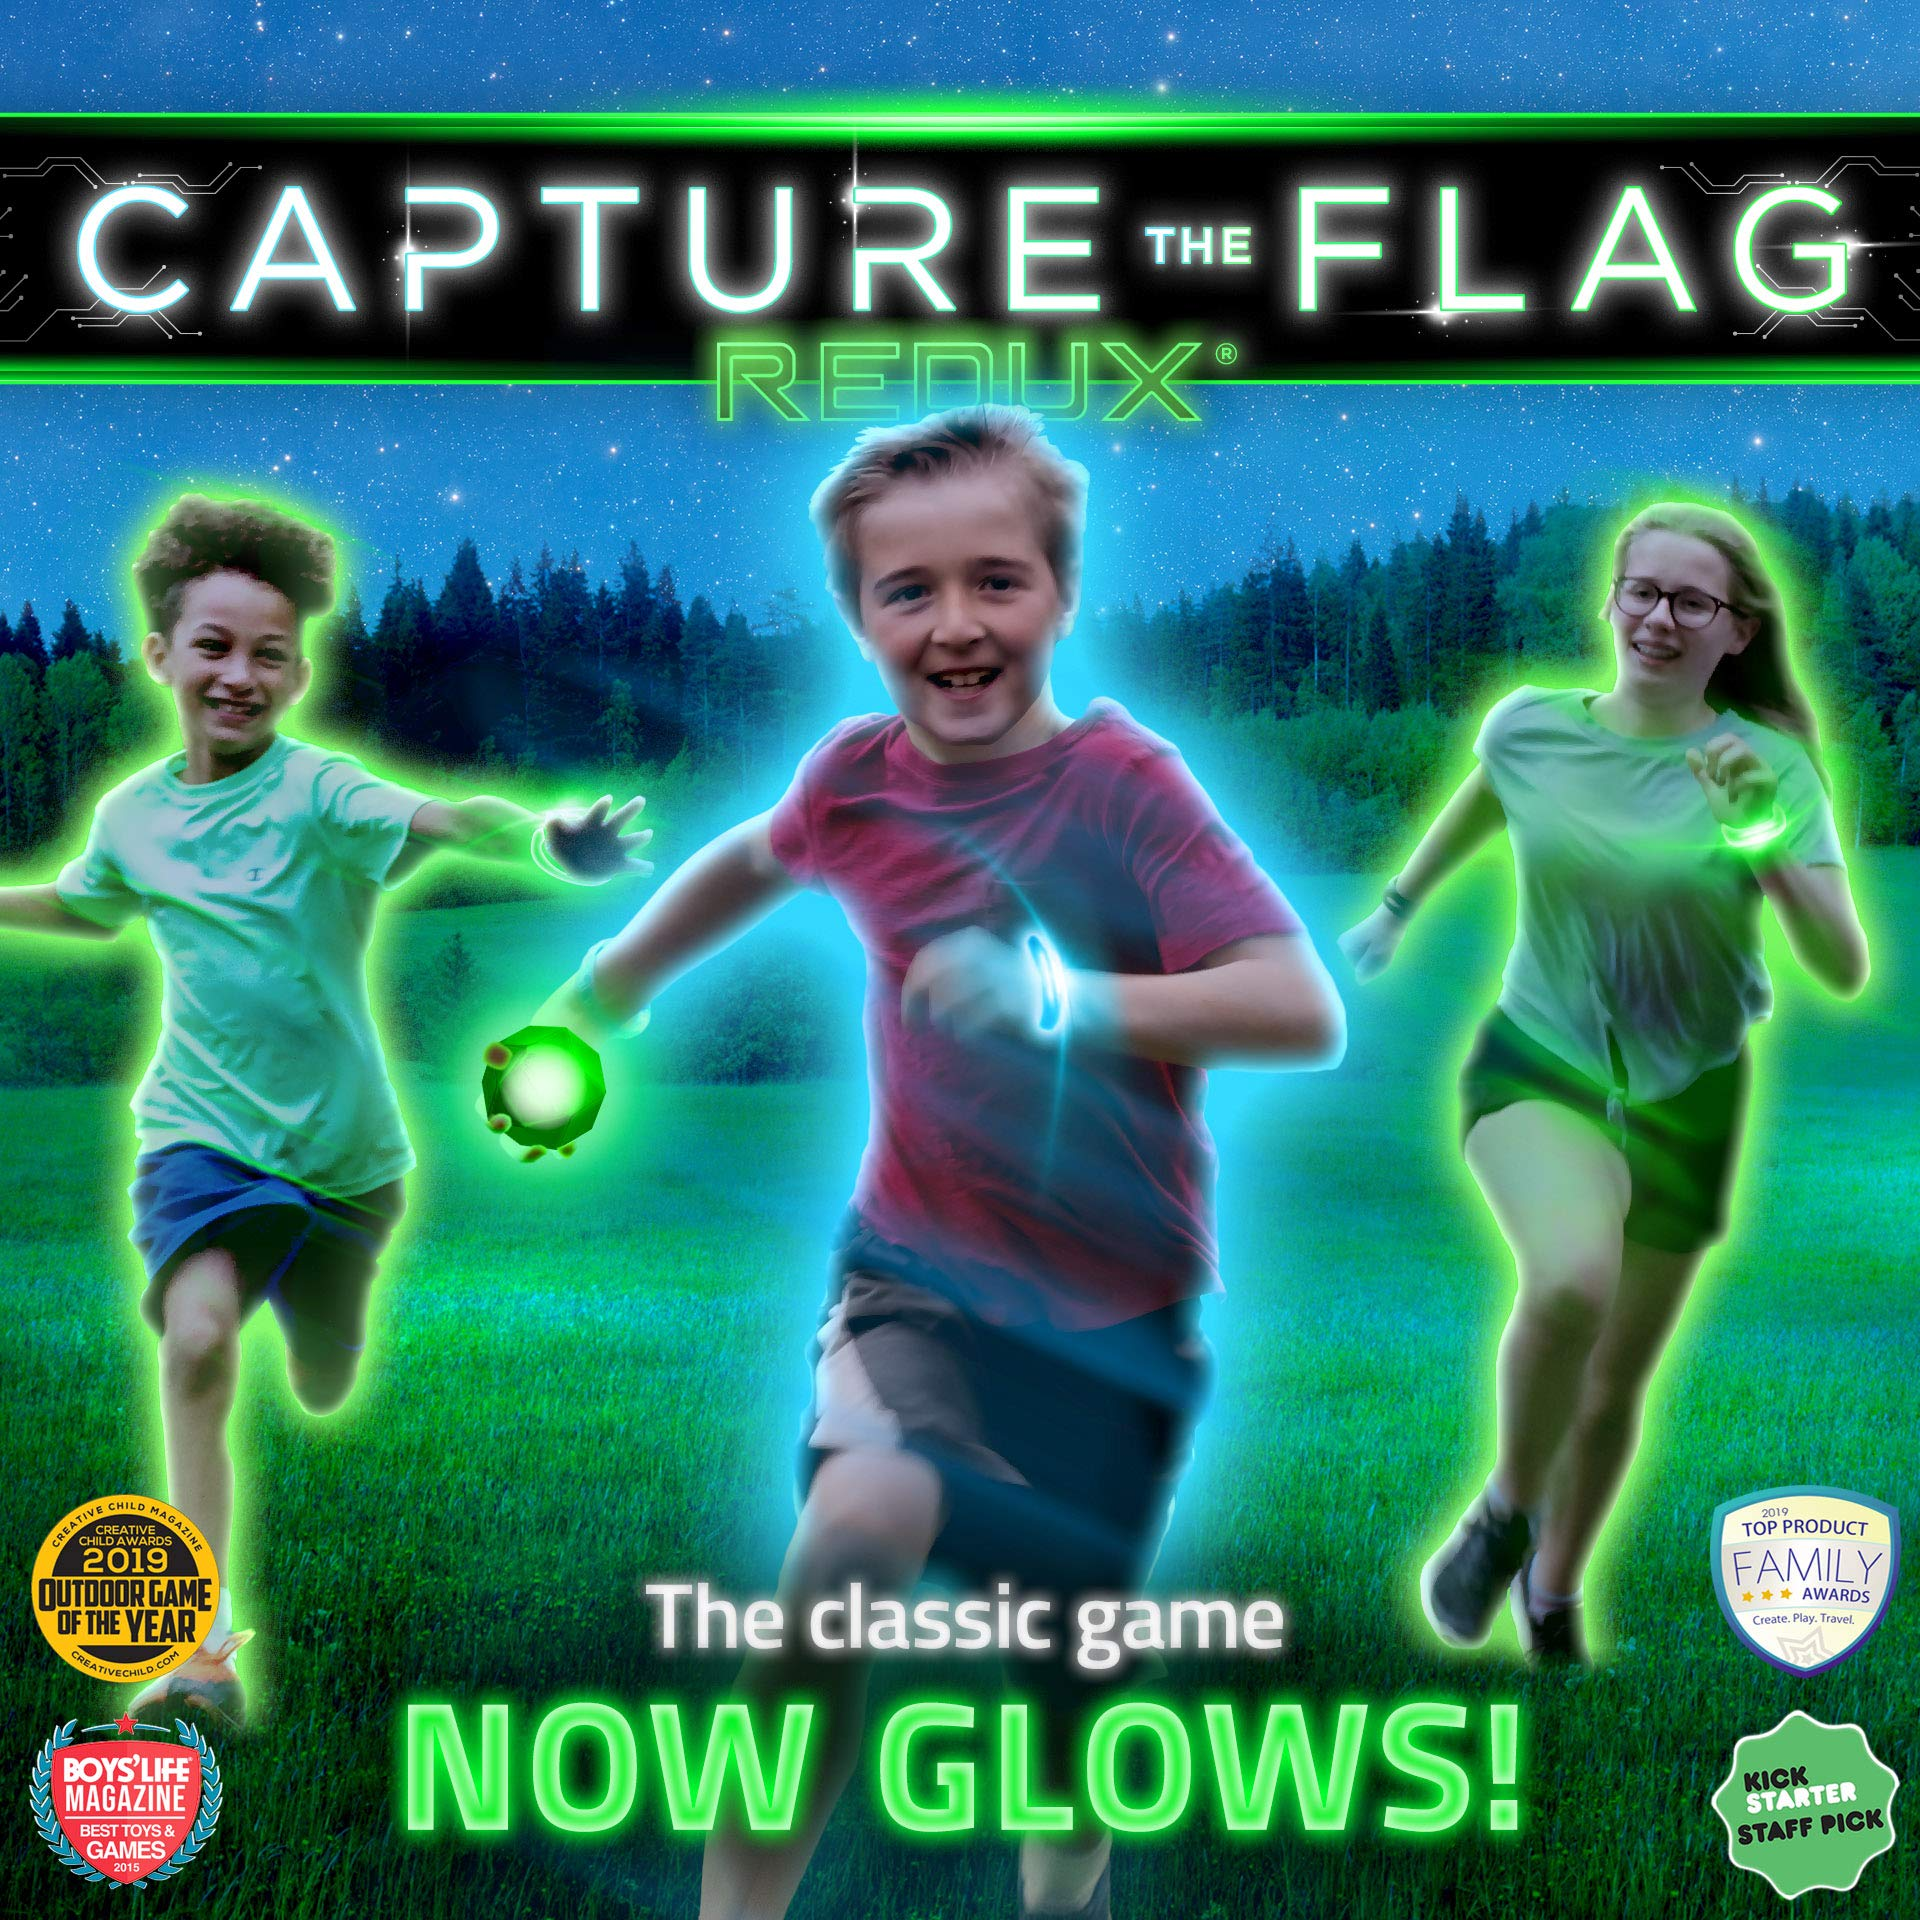 Capture the Flag REDUX: The Original Glow-in-The-Dark Outdoor Game for Birthday Parties, Youth Groups and Team Building - a Unique Gift for Teen Boys & Girls by Starlux Games